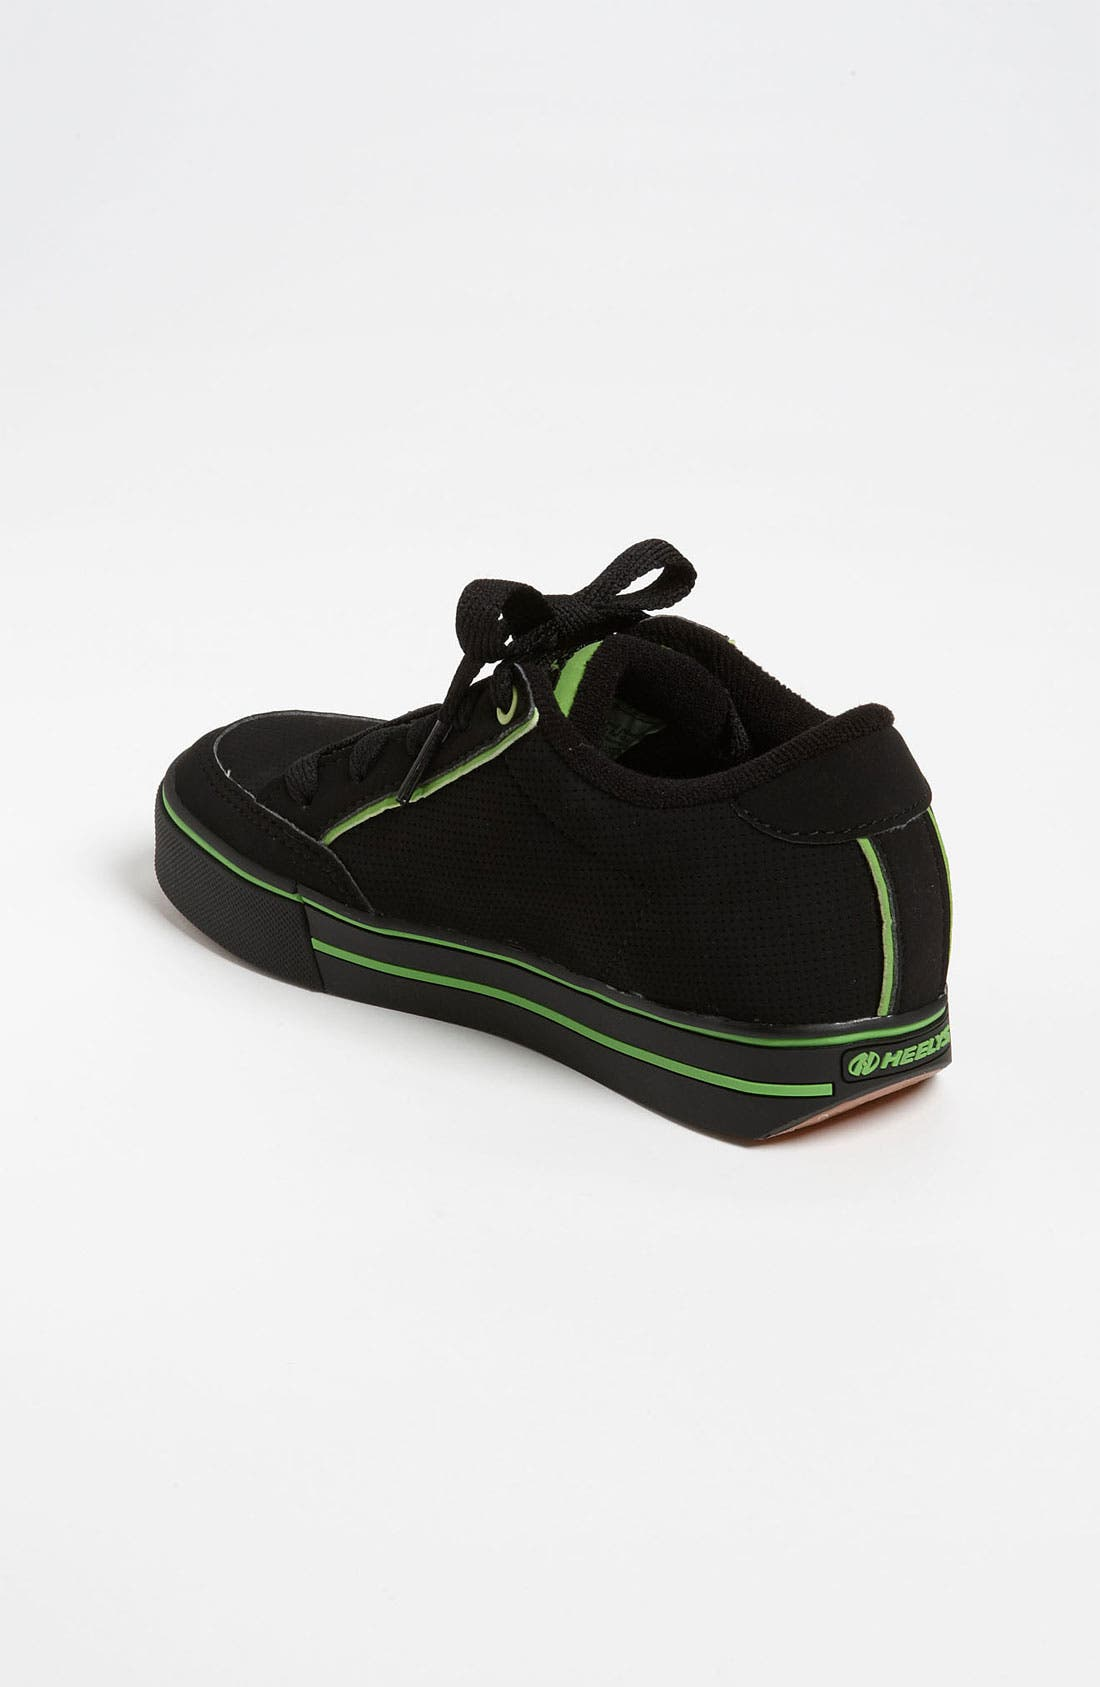 Alternate Image 2  - Heelys 'Wave' Skate Shoe (Toddler, Little Kids & Big Kids)